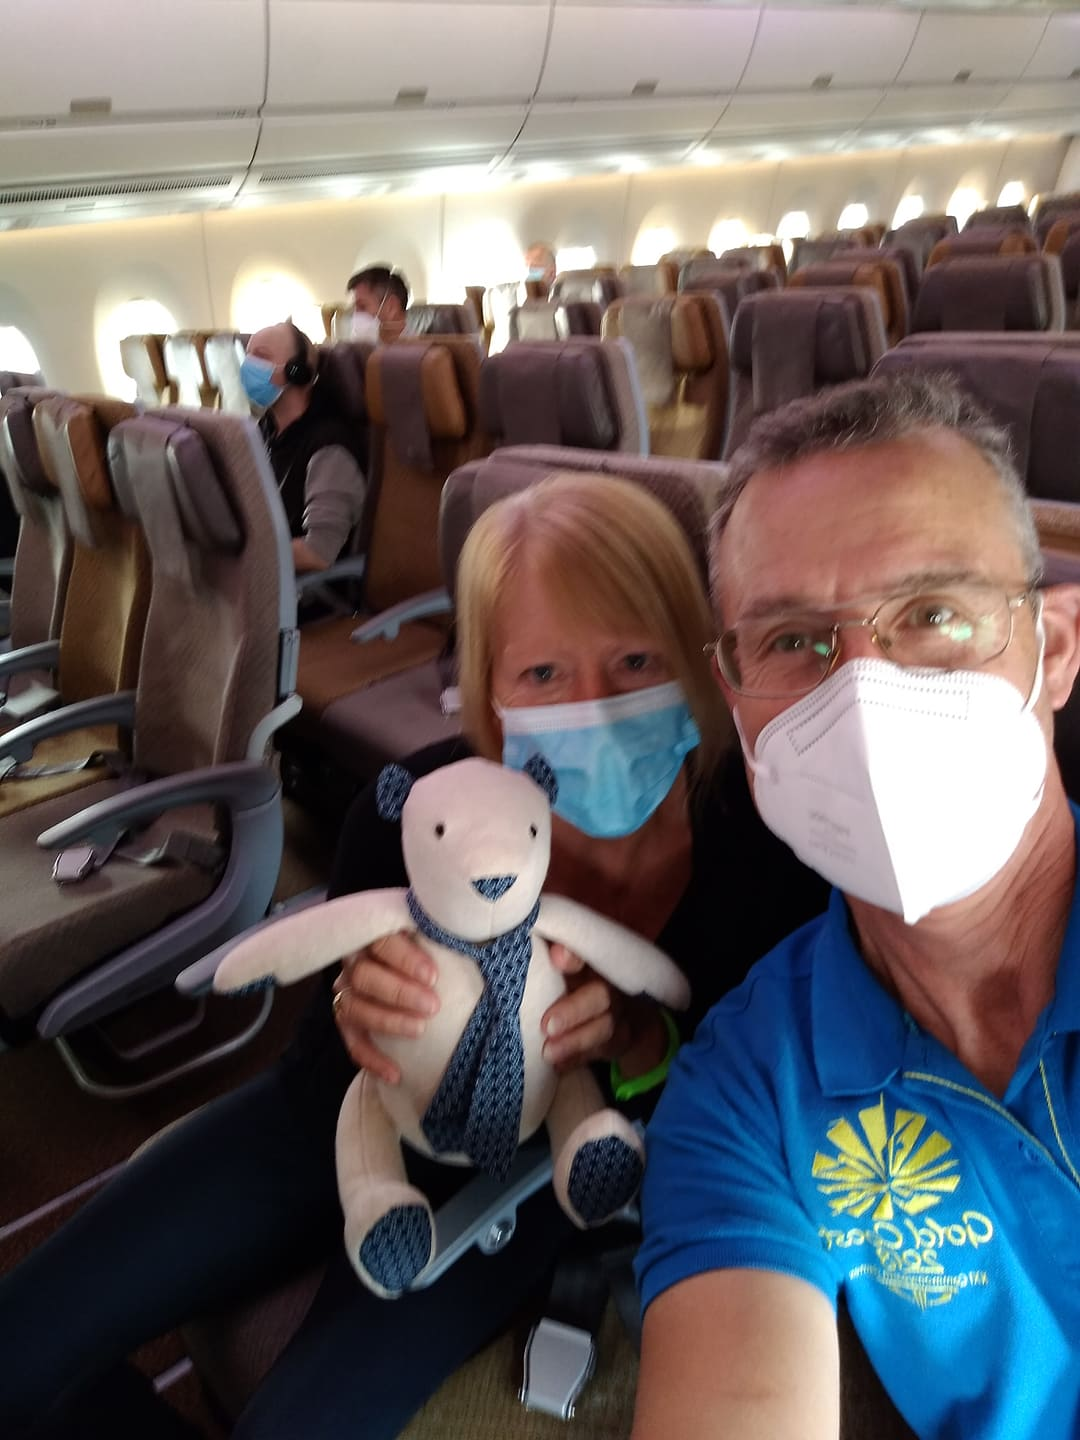 man and woman on plane with a teddy bear